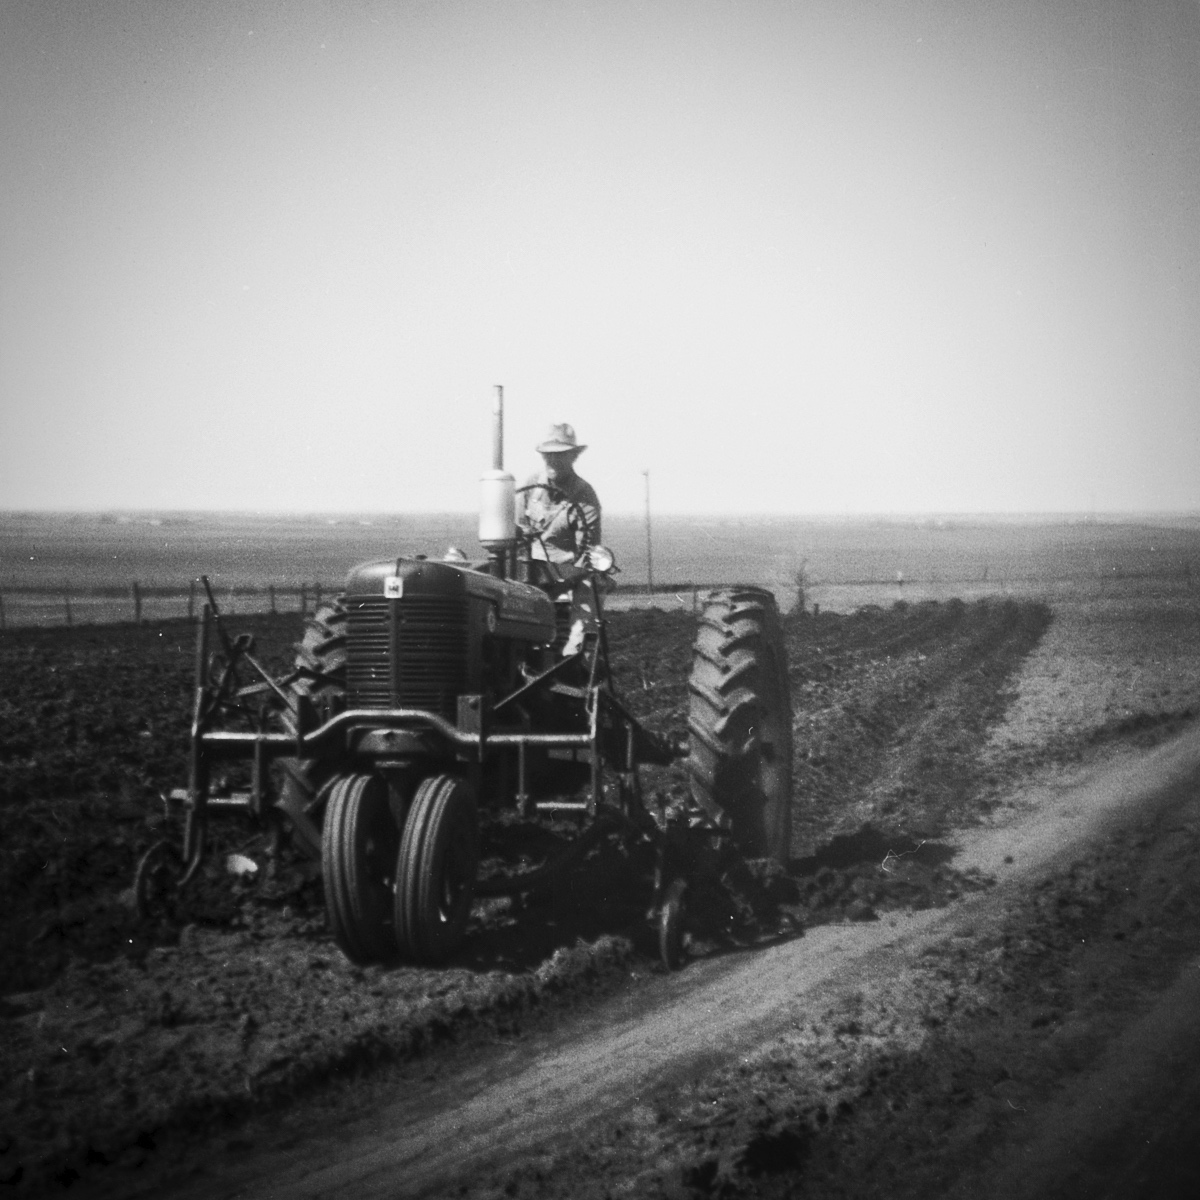 Farming technology at the time. My grandfather is driving the tractor. When he was born in 1891, radio was not yet a thing and the gas-powered automobile was a rarity only 6 years old. When my father died in 1981, he was still using that old tractor.